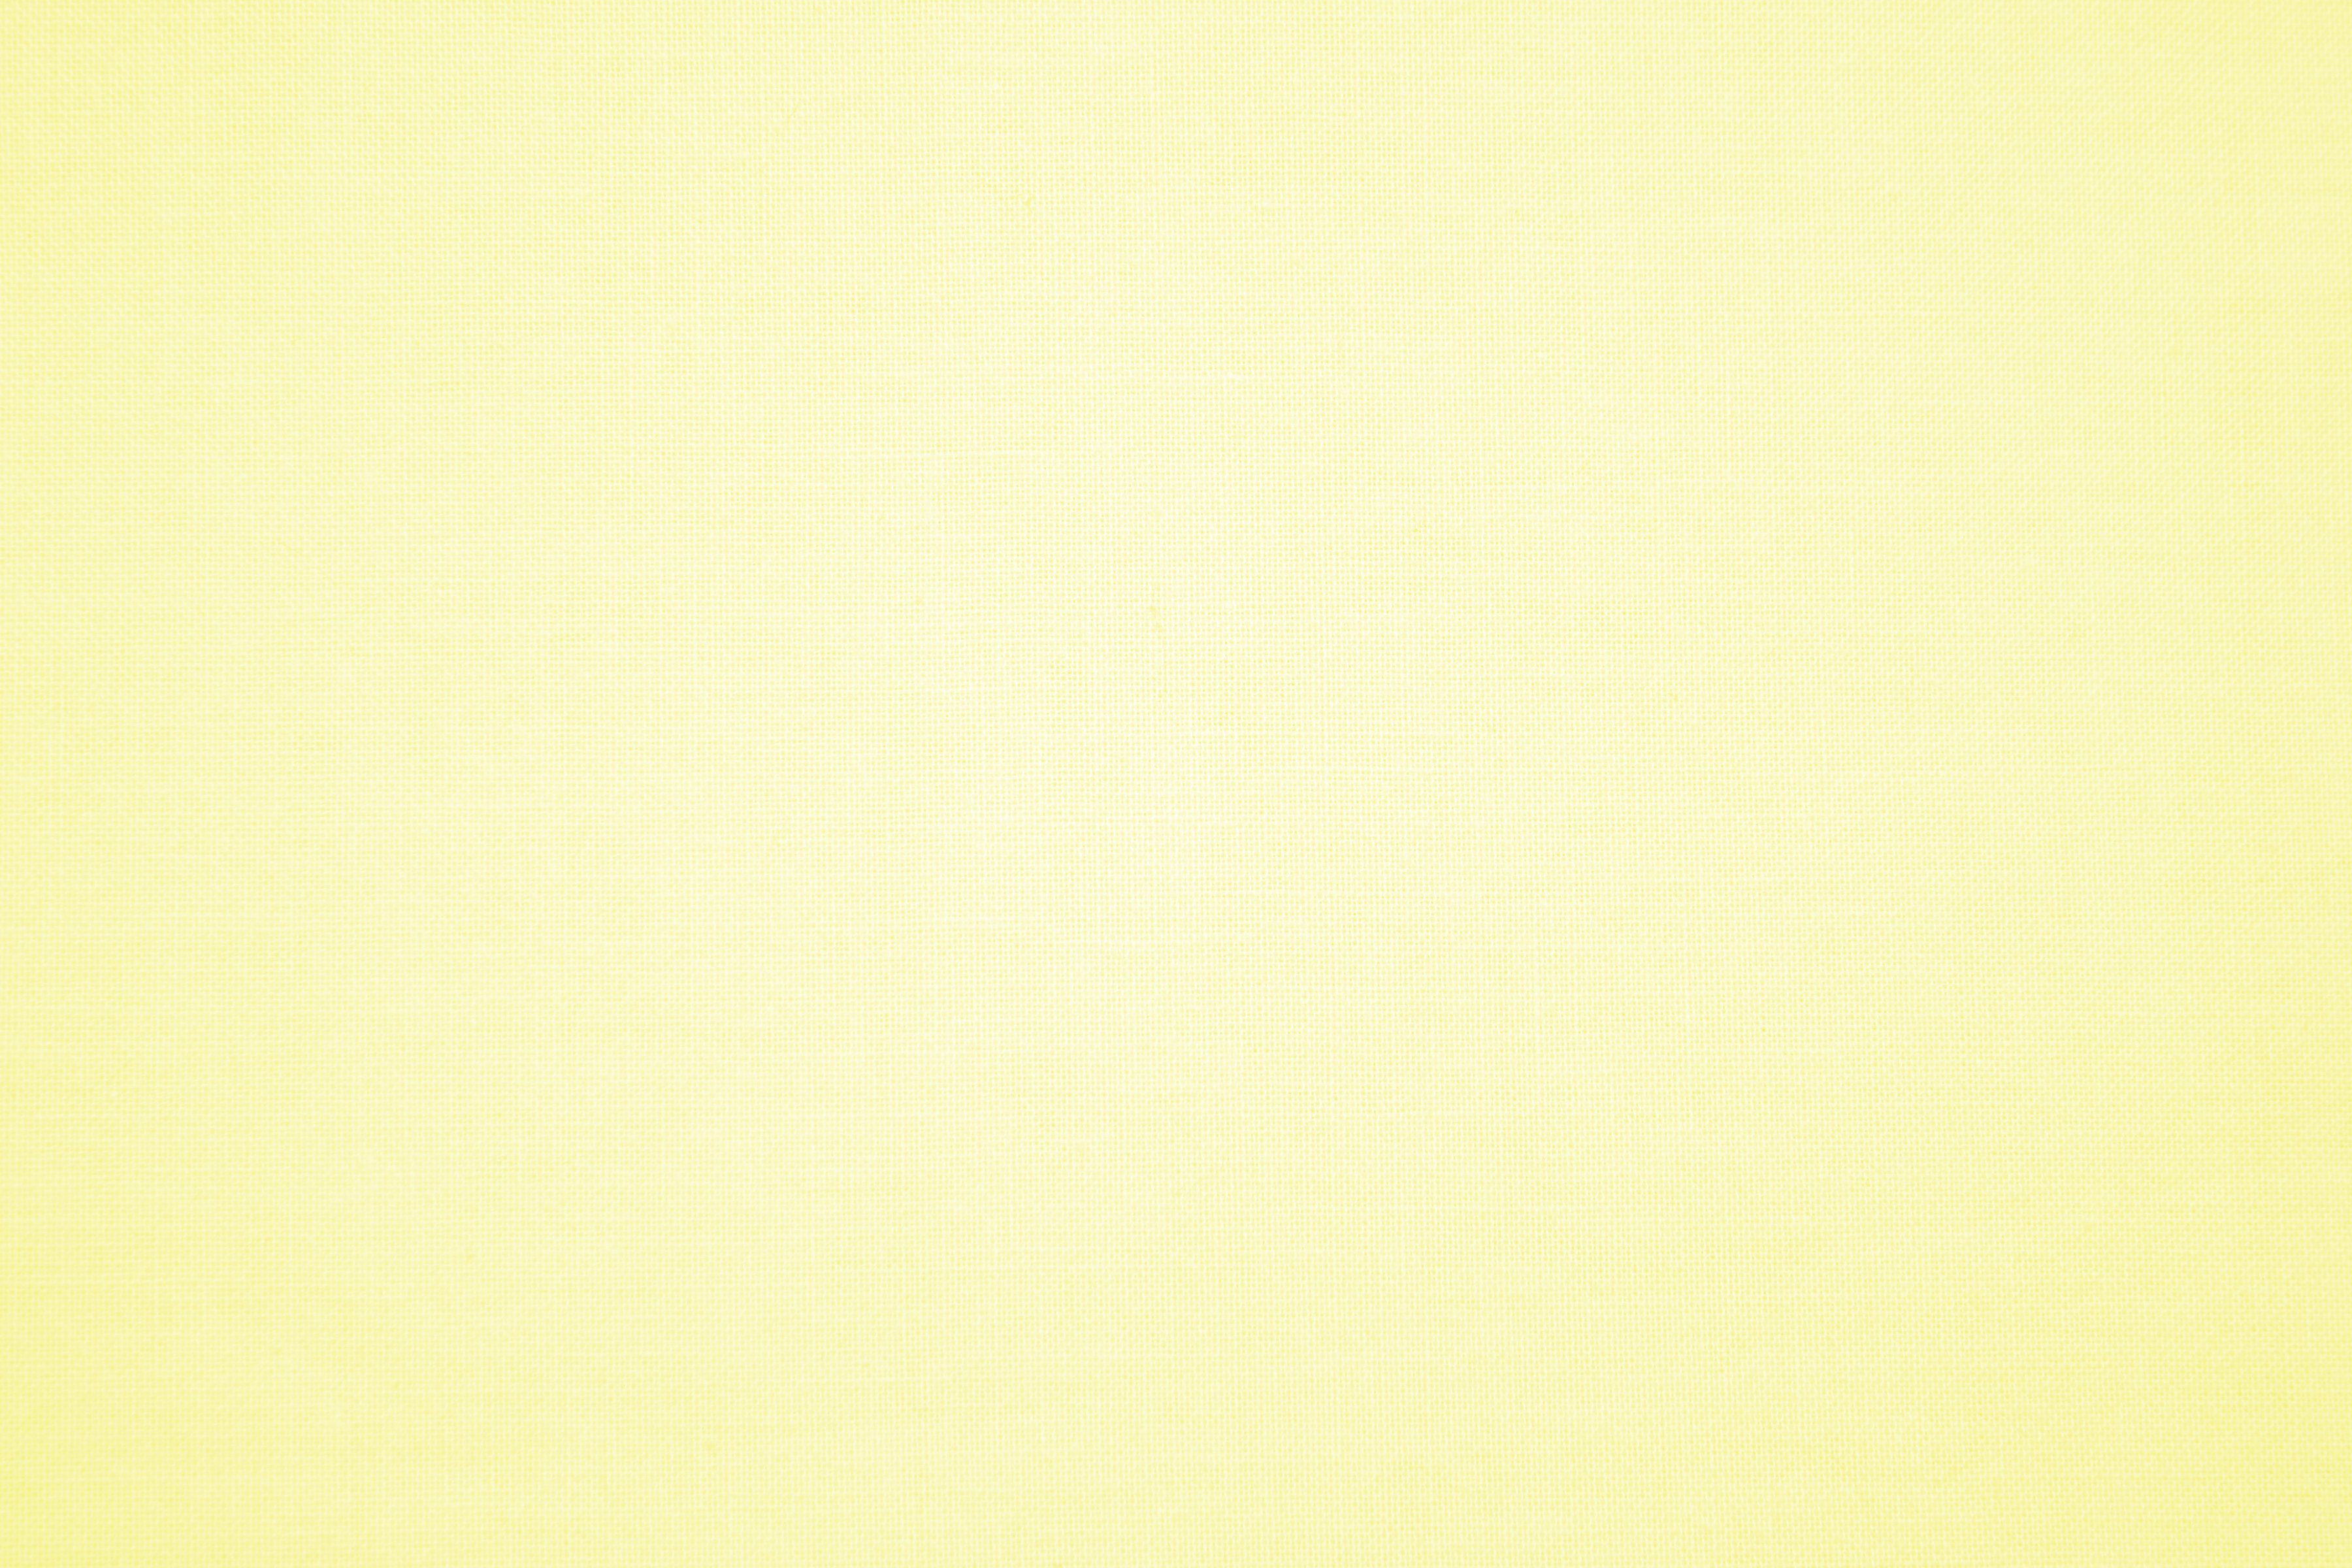 Pastel Yellow Canvas Fabric Texture Picture | Free Photograph ...